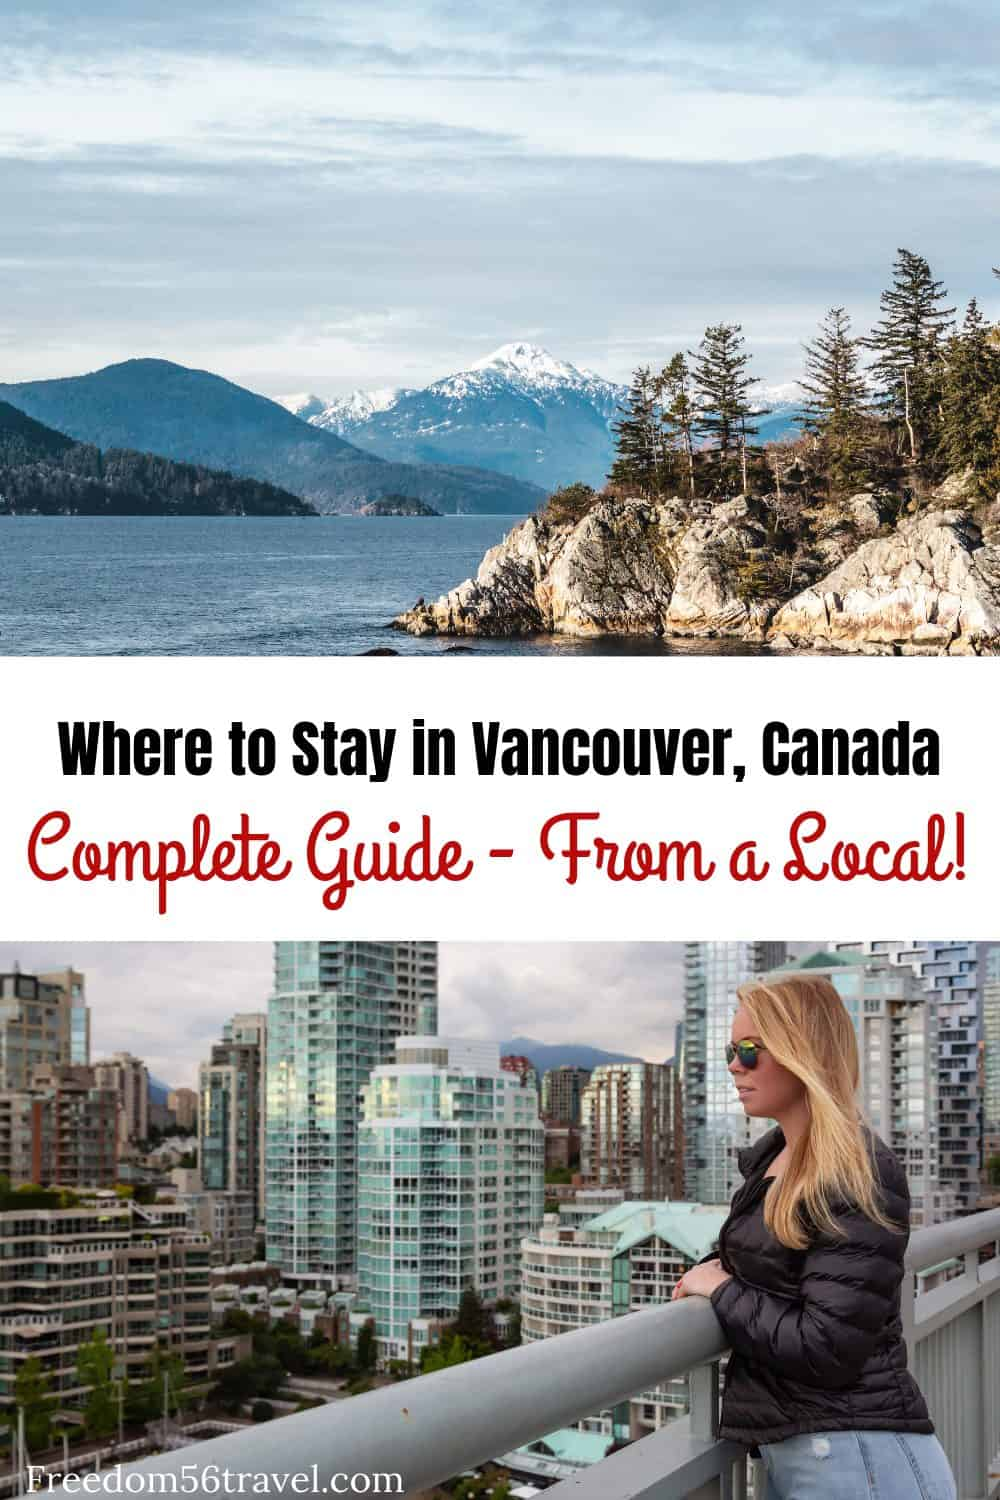 Pinterest image for where to stay in Vancouver